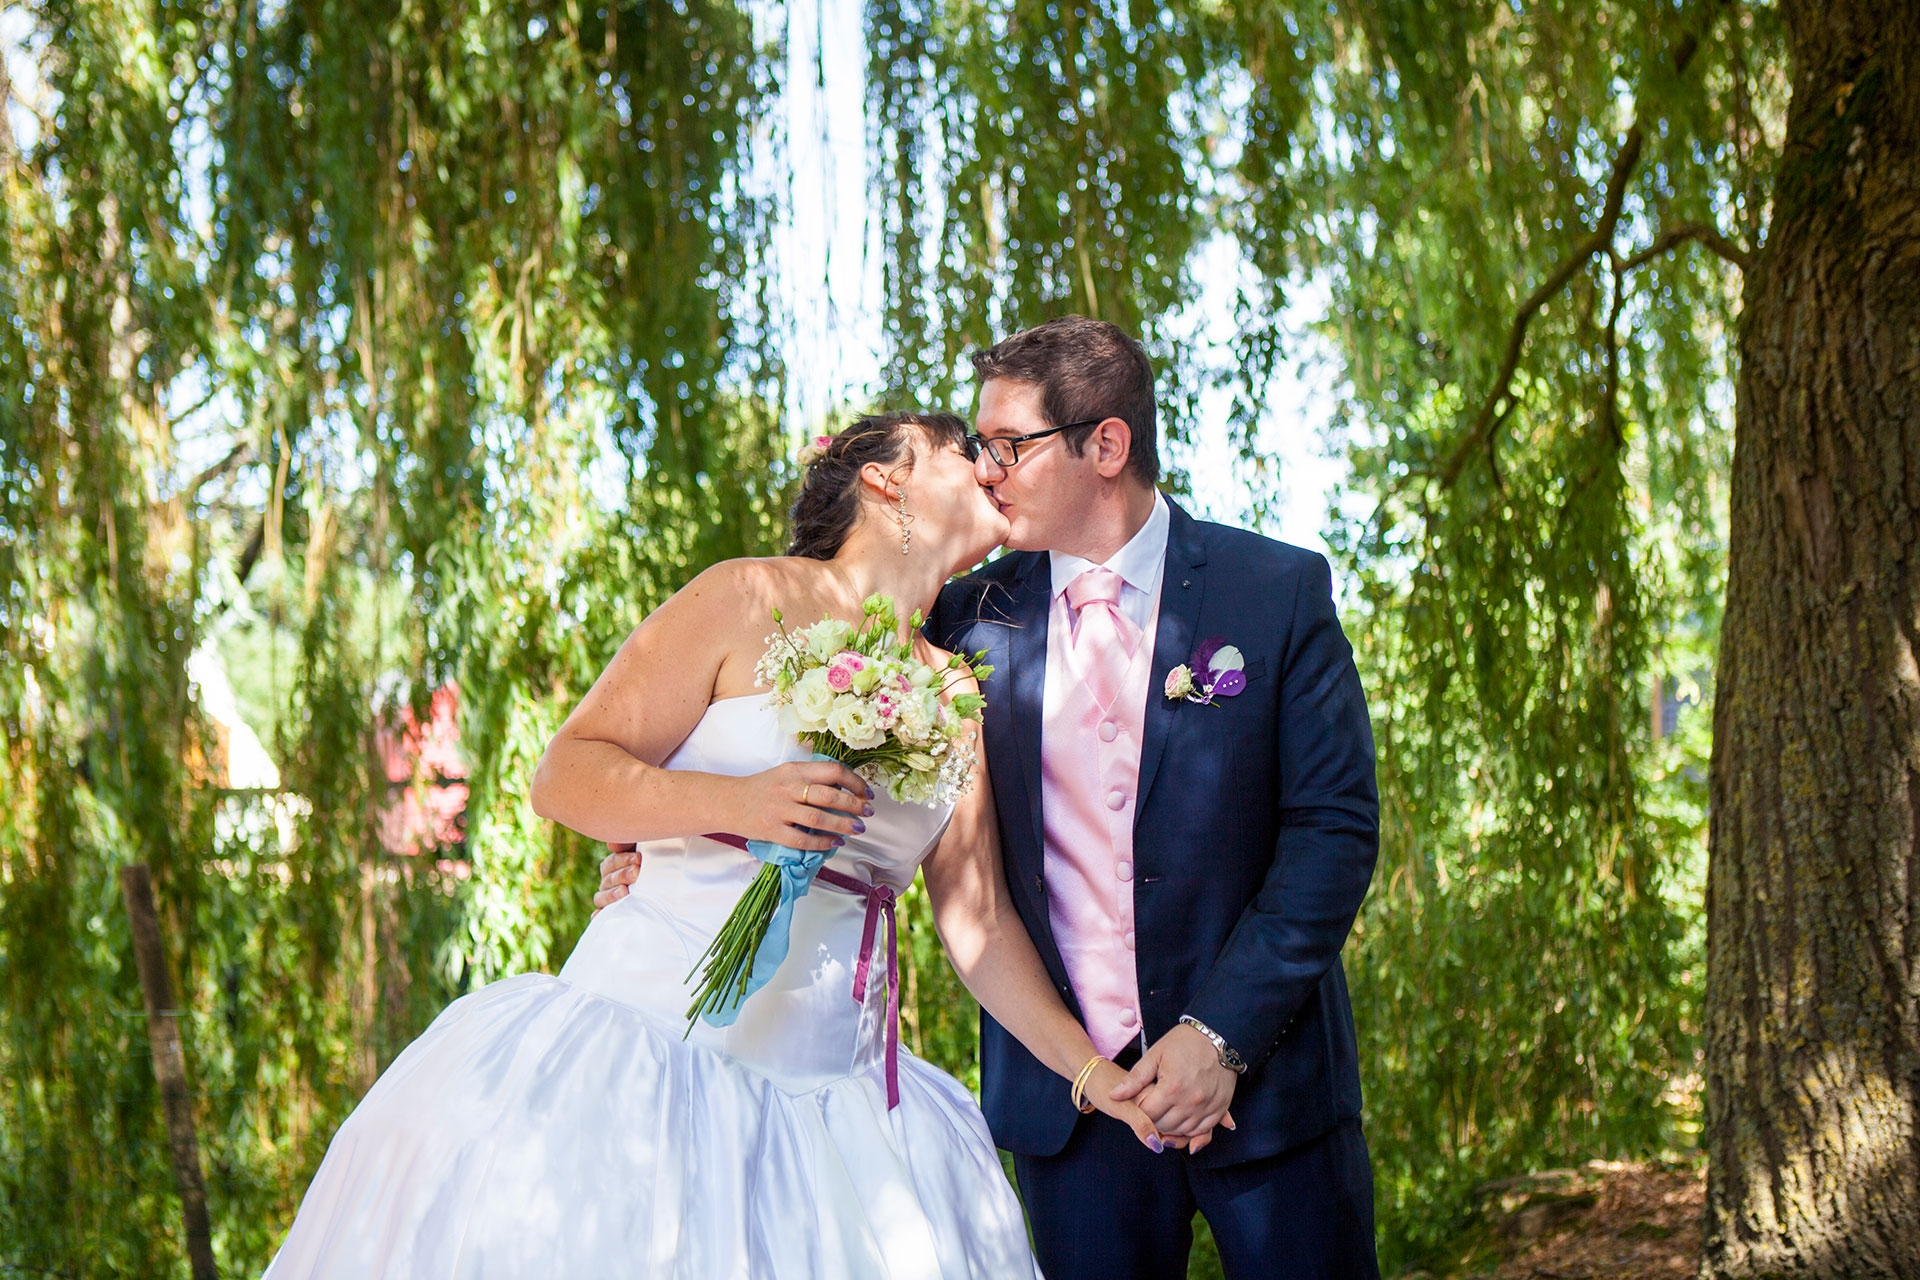 particuliers-evenements-mariages-oui-france&philippe-29